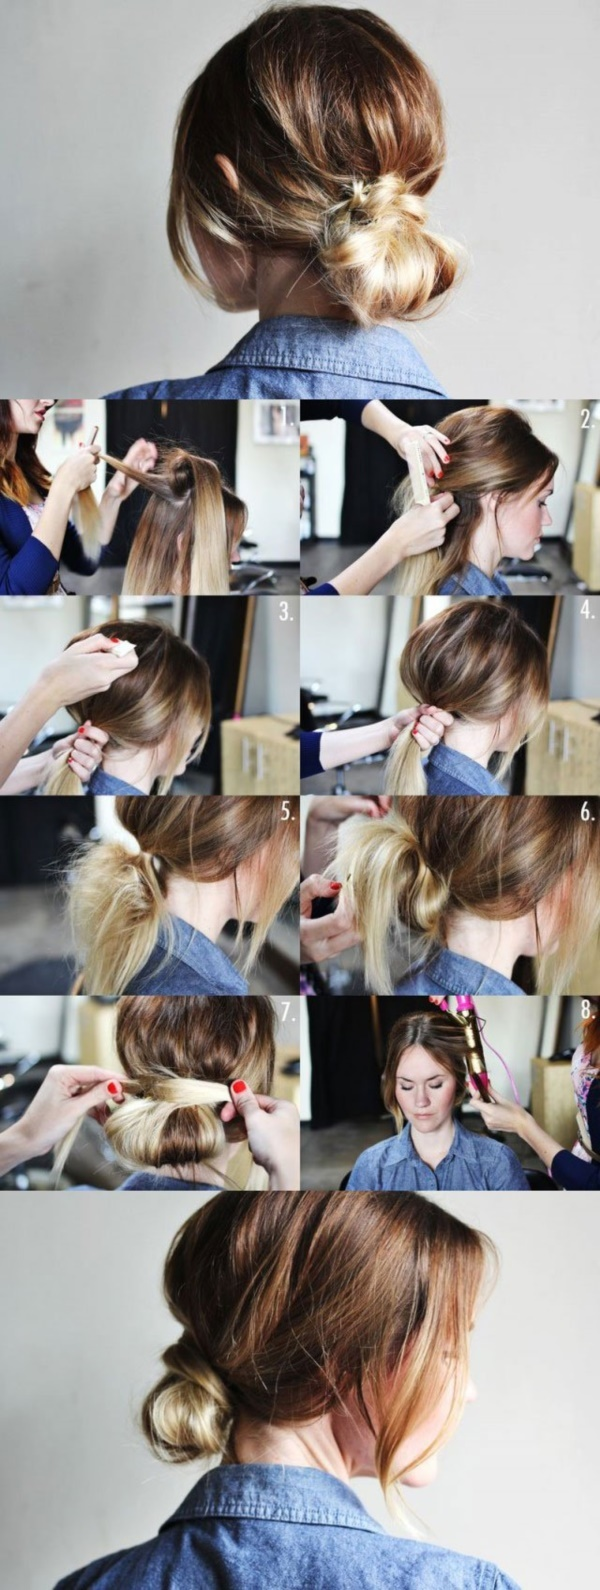 Excellent 101 Easy Diy Hairstyles For Medium And Long Hair To Snatch Attention Short Hairstyles For Black Women Fulllsitofus